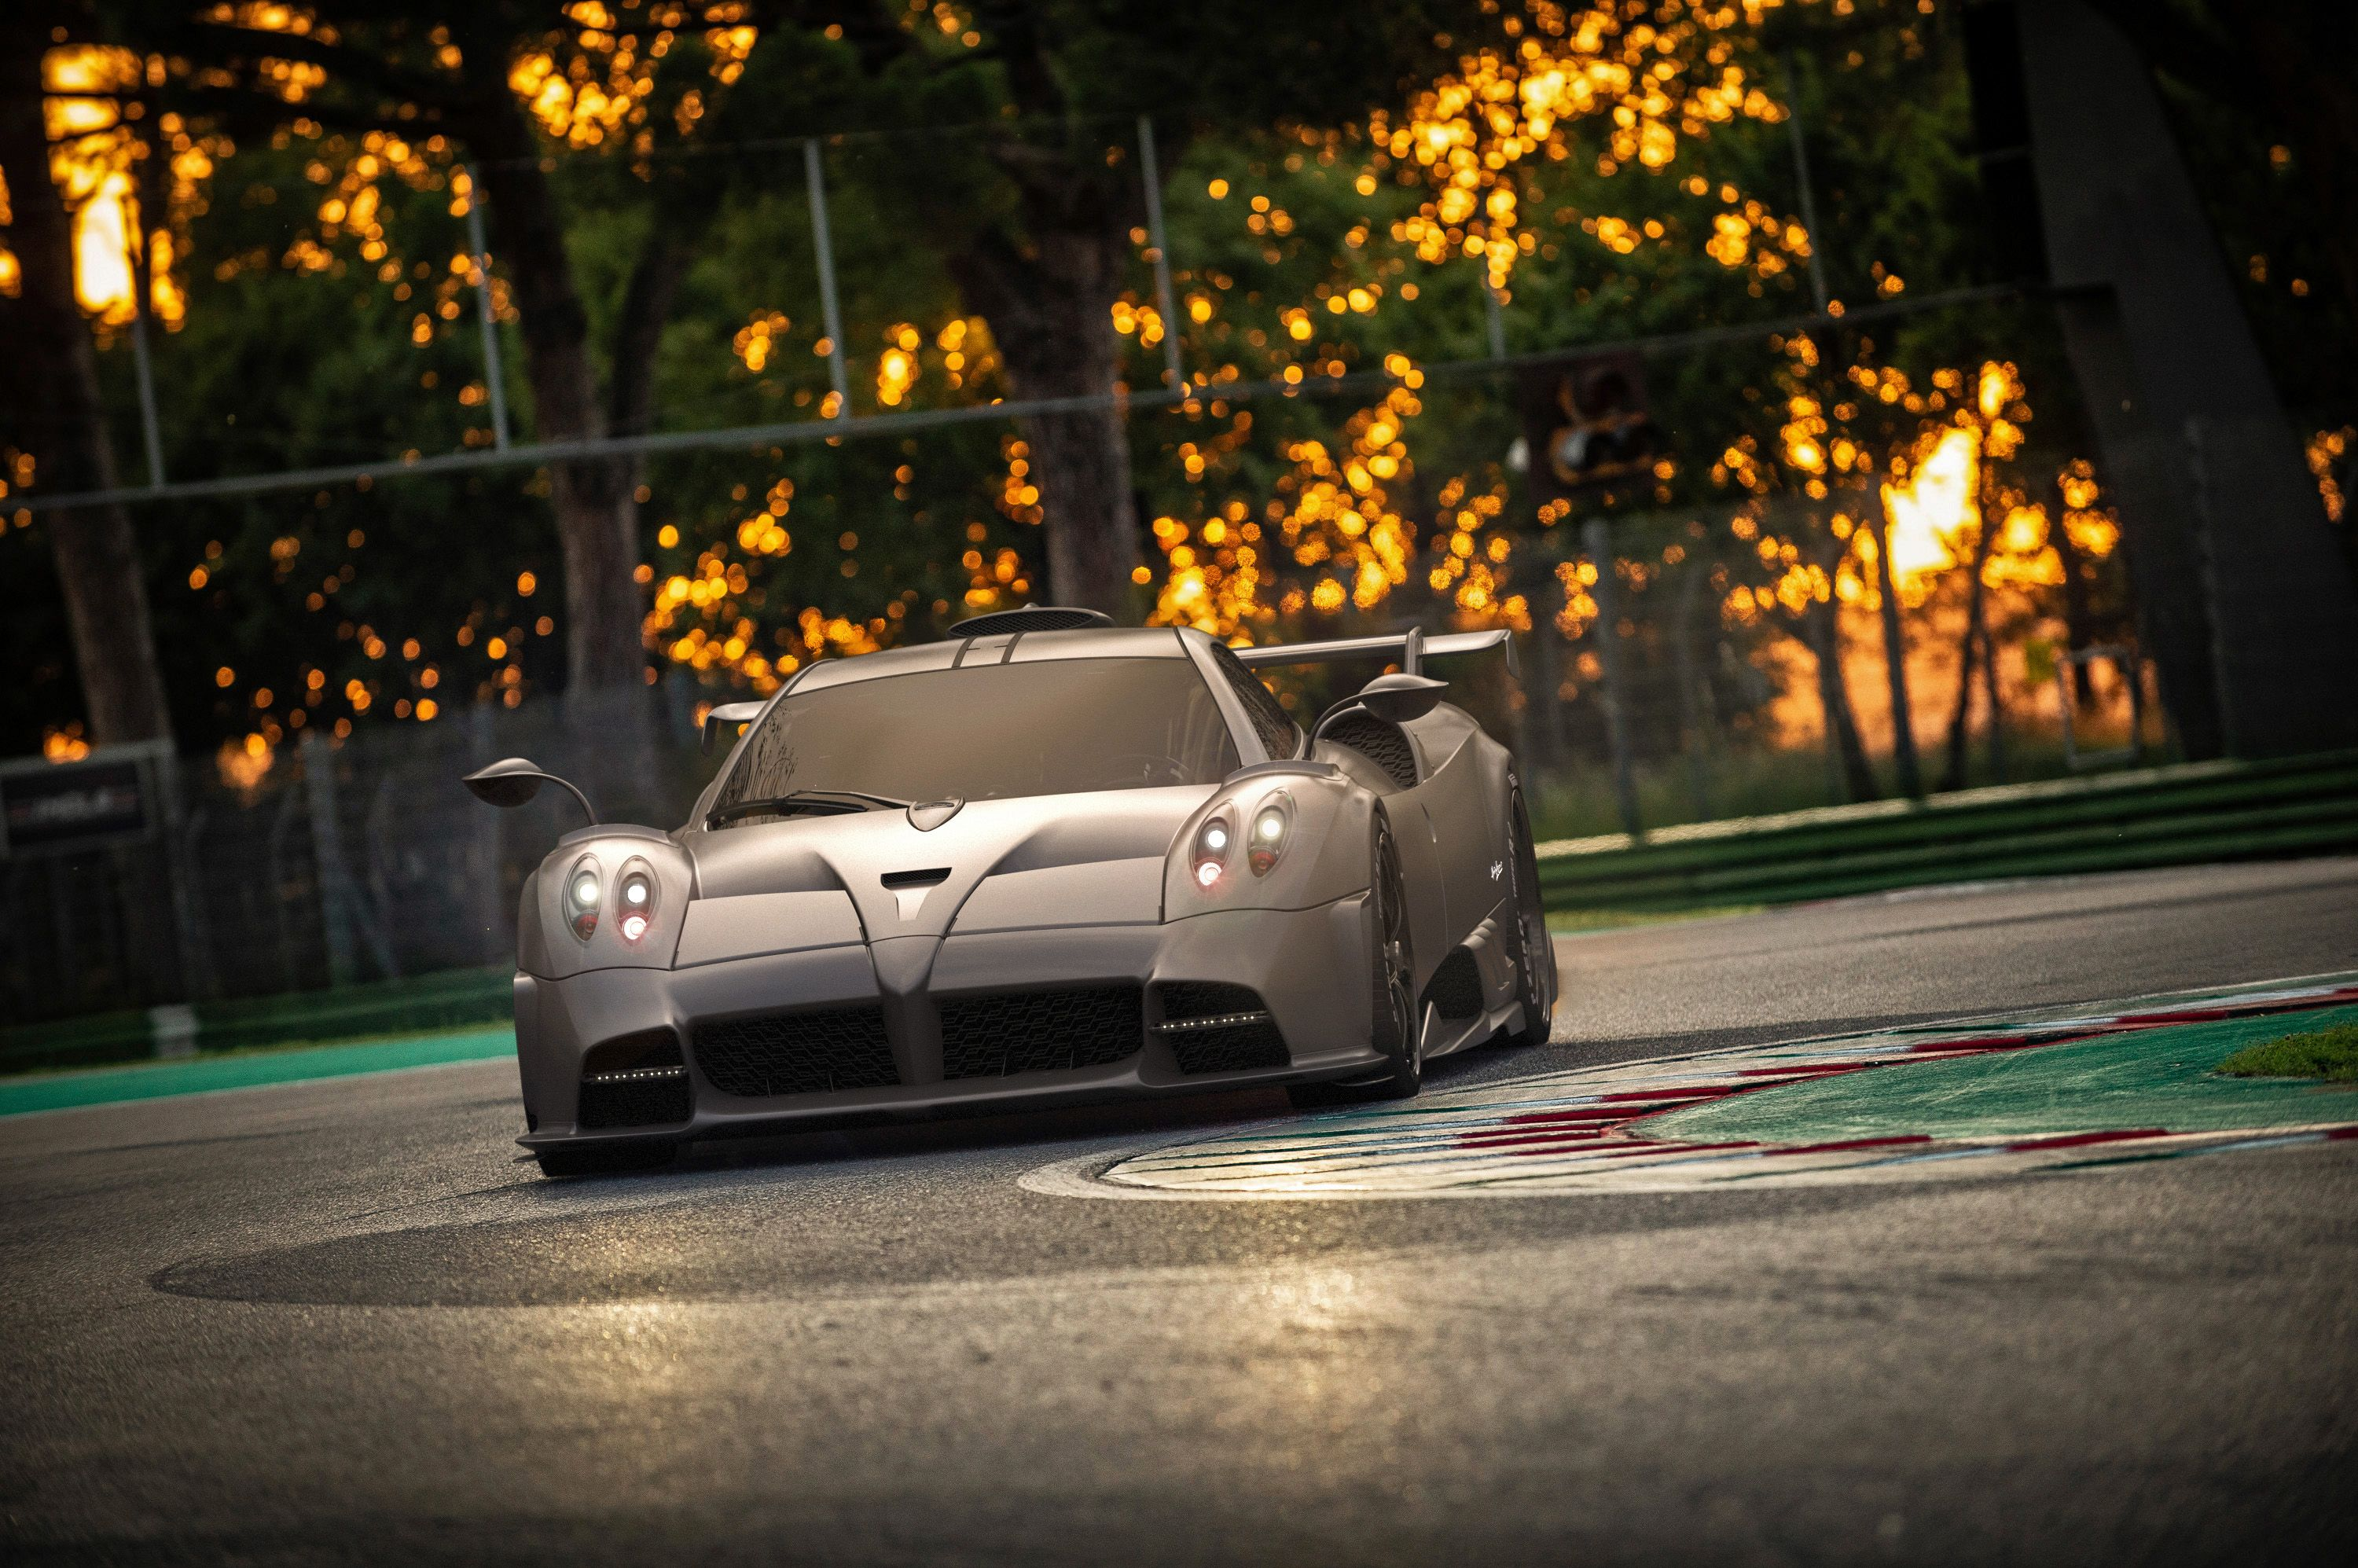 The Pagani Imola Is a Wild Track-Ready Huayra With 827 Horsepower